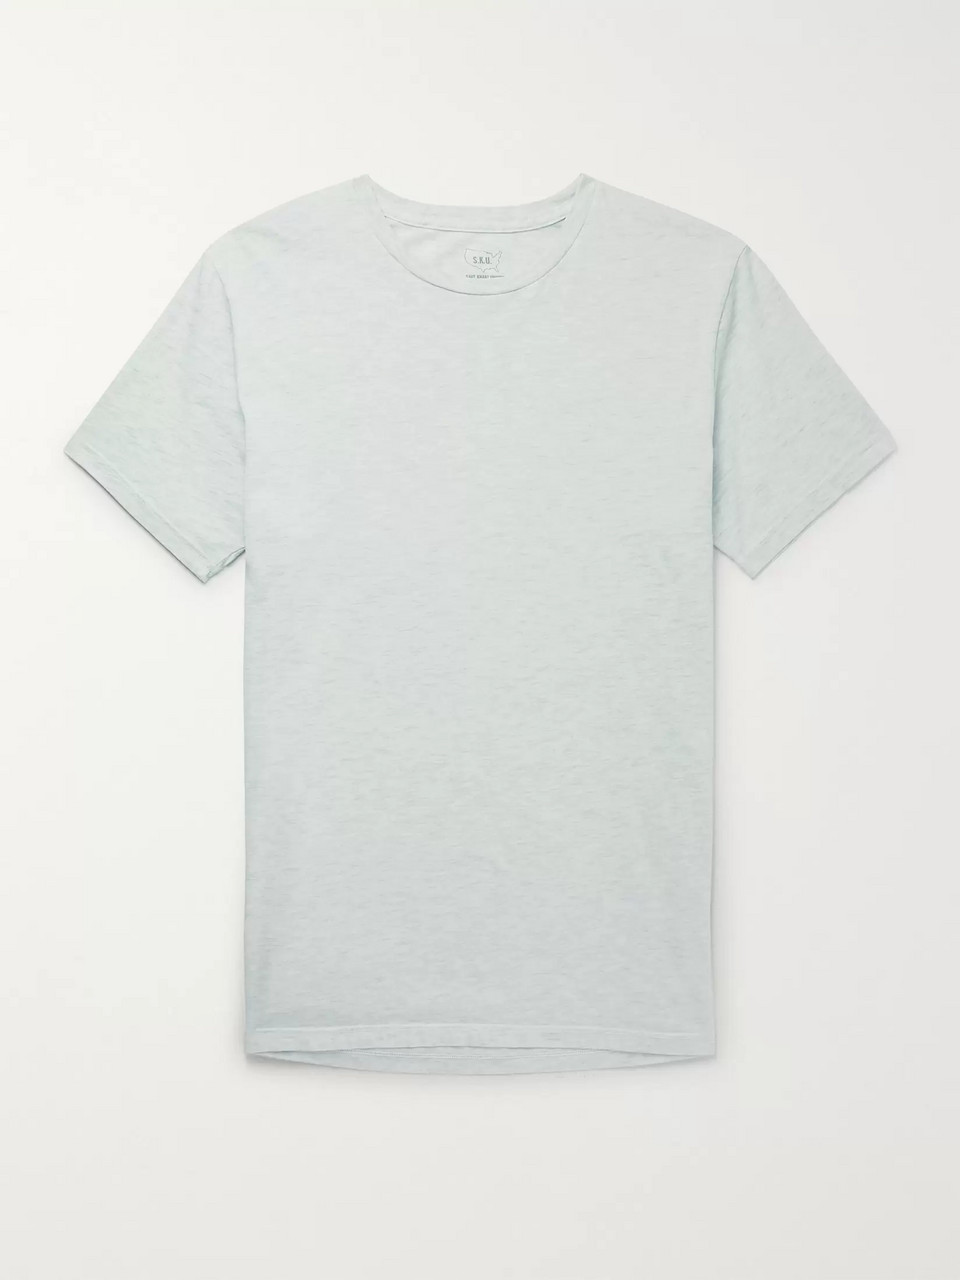 Save Khaki United Mélange Cotton-Blend Jersey T-Shirt